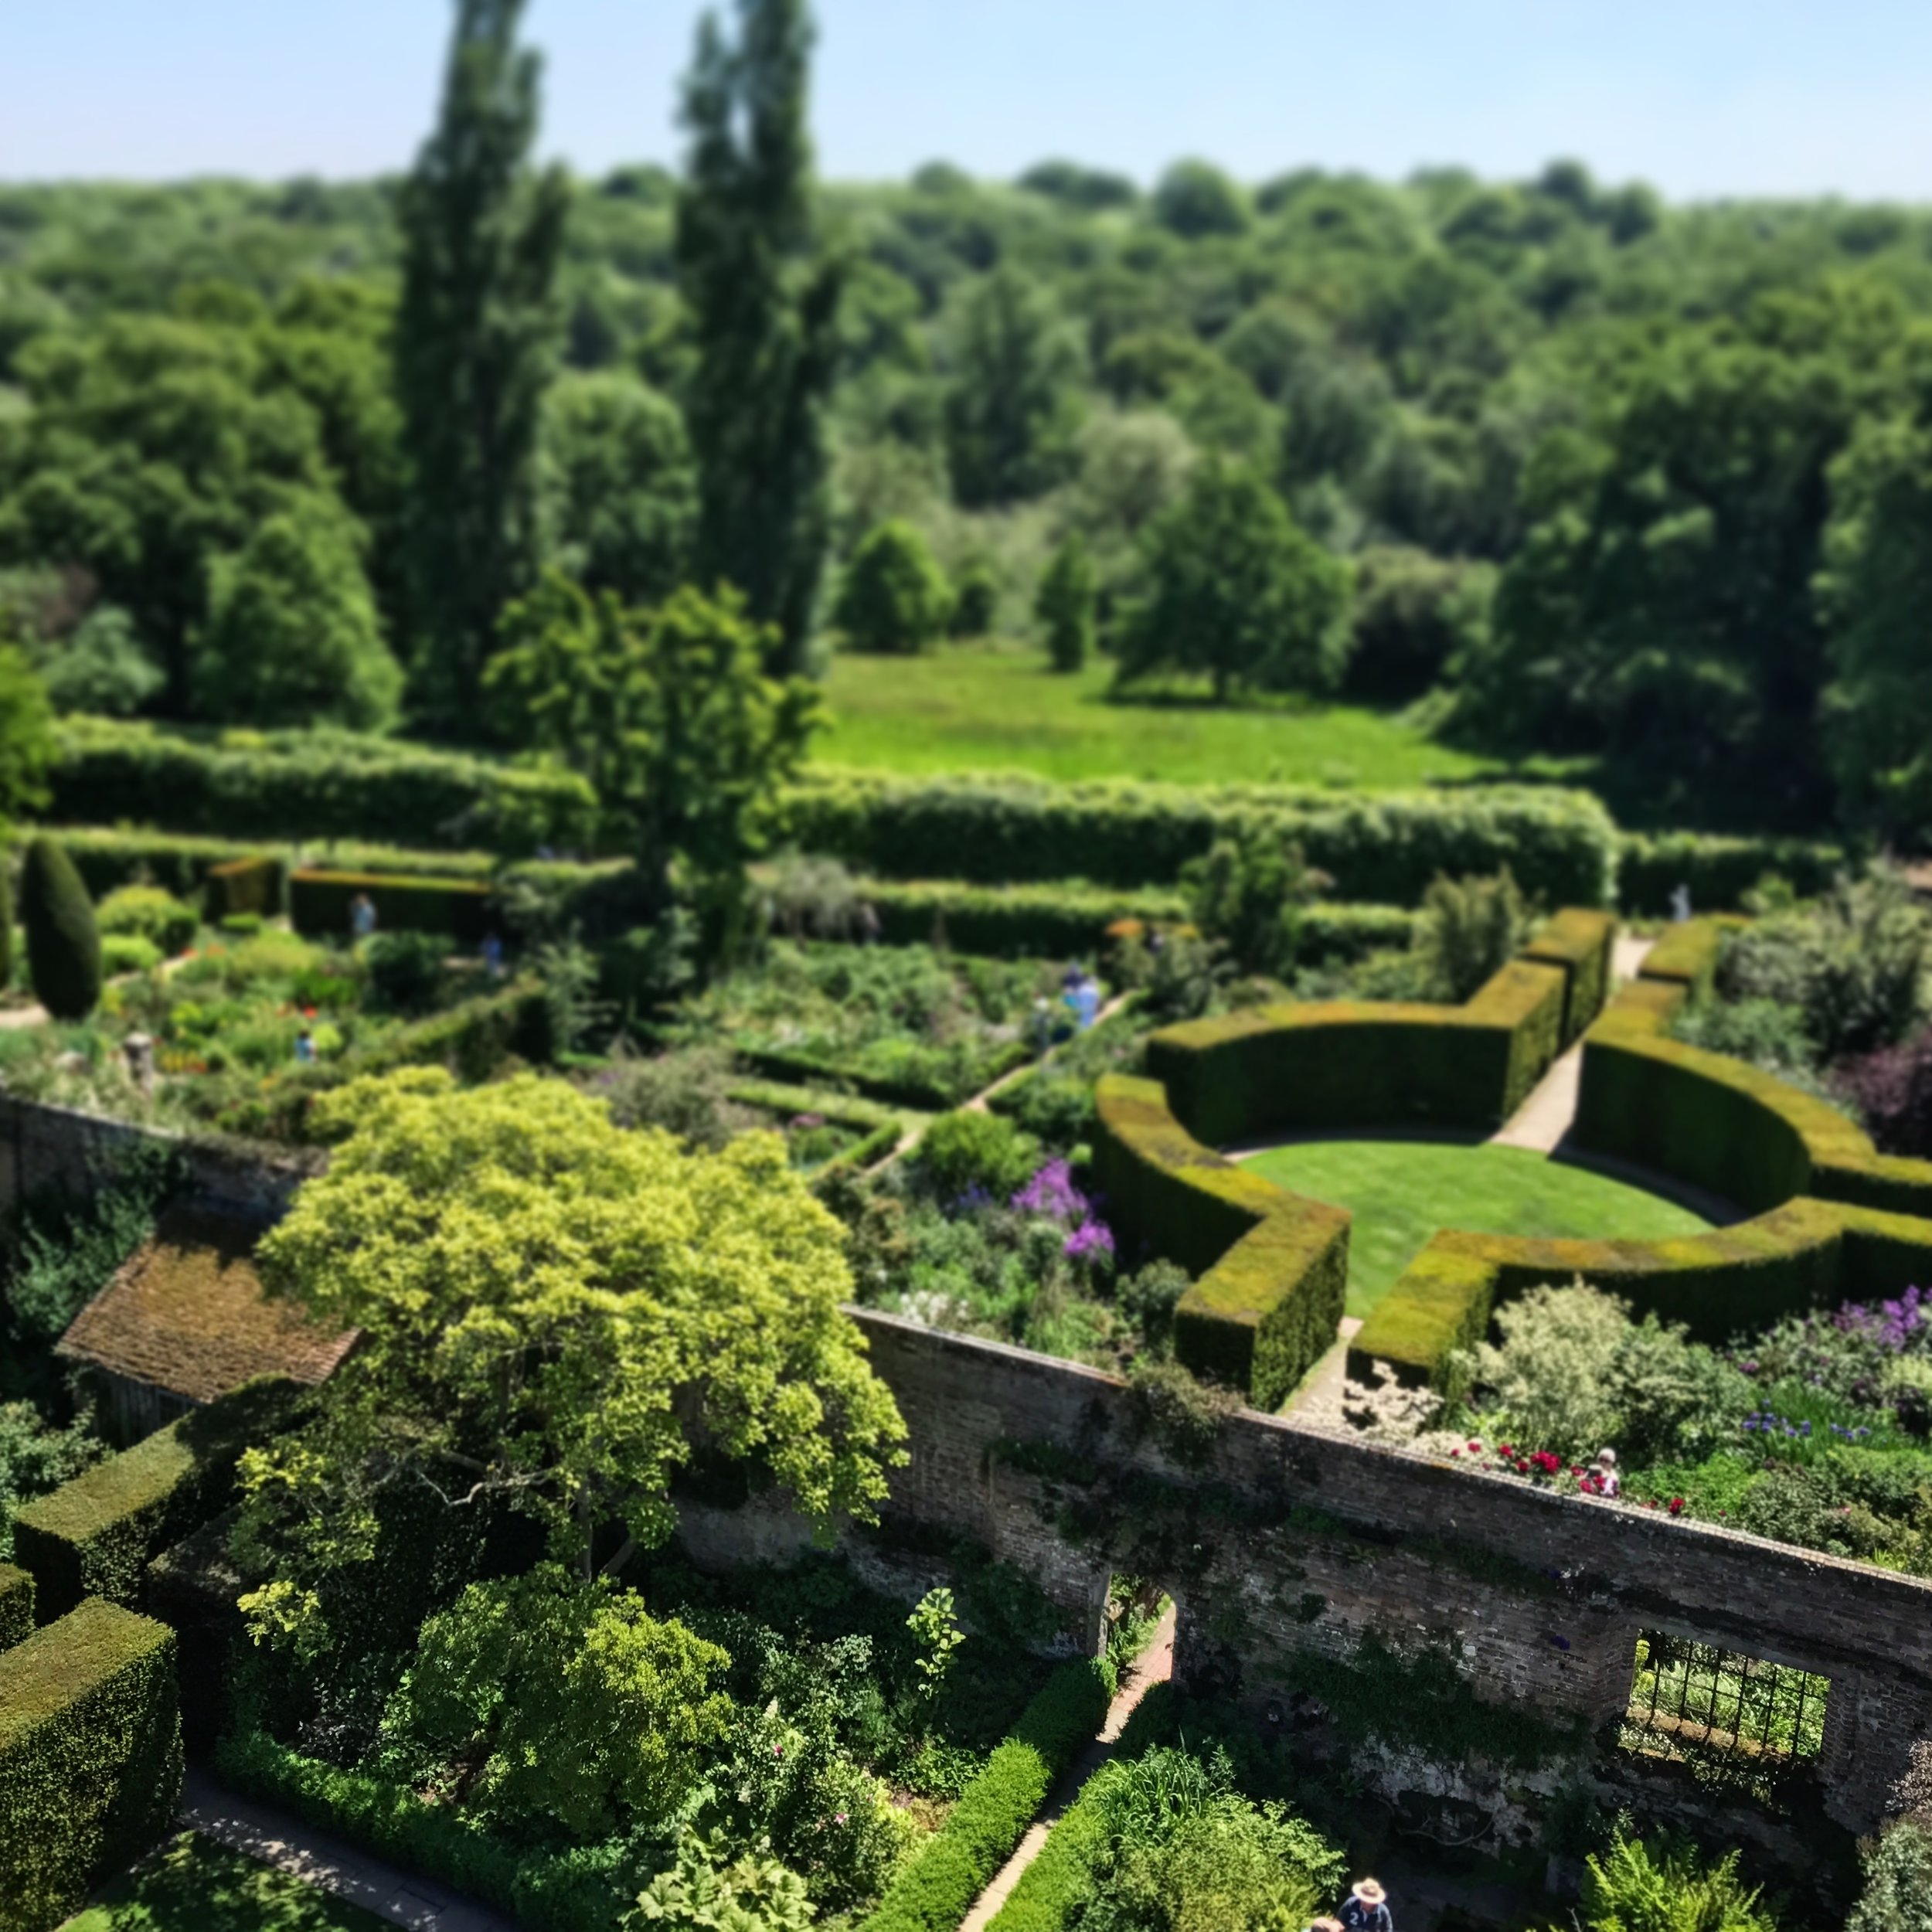 Photograph by Kate Turney of Sissinghurst garden and tower interior, Sissinghurst Castle Garden, Biddenden Rd, Cranbrook TN17 2AB, UK. ©2016 Twelve Gardens Ltd. http://twelvegardens.com/blog/inspiration